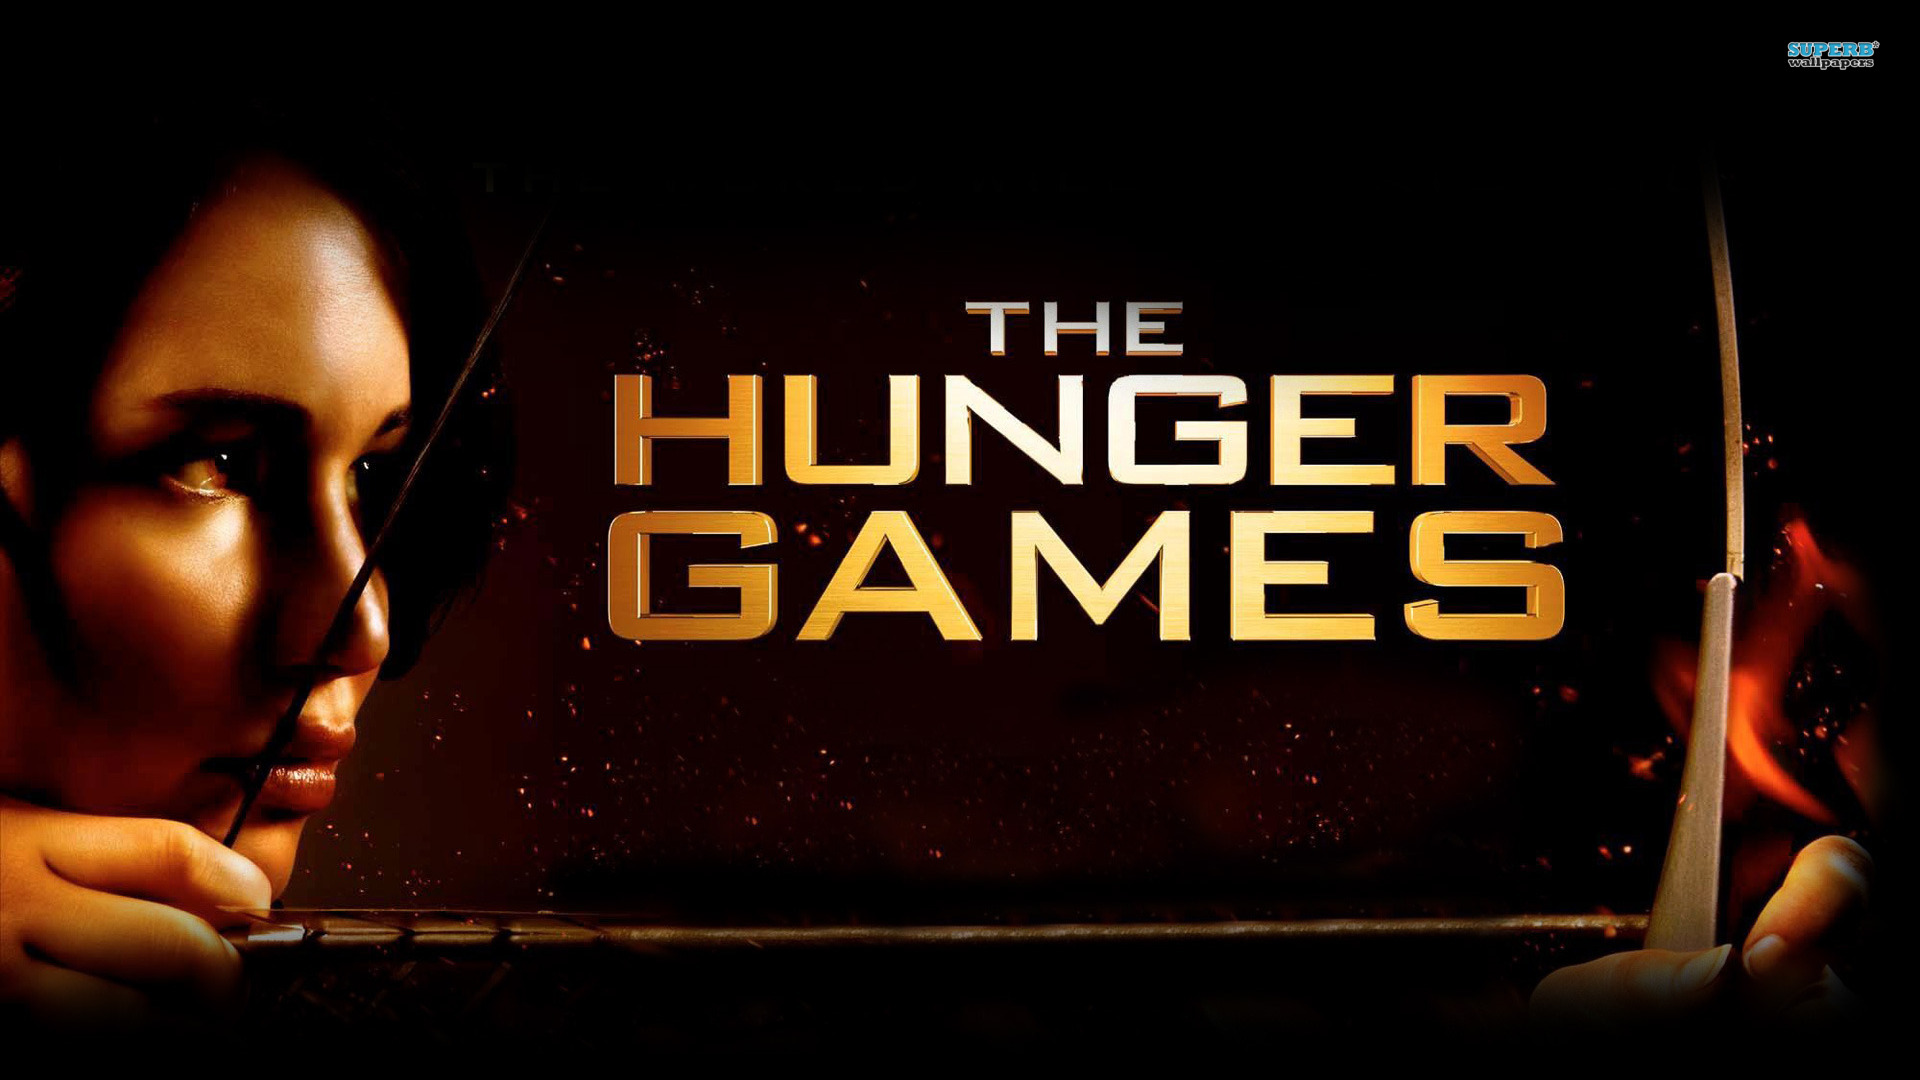 Katniss Everdeen - The Hunger Games wallpaper 1920x1080